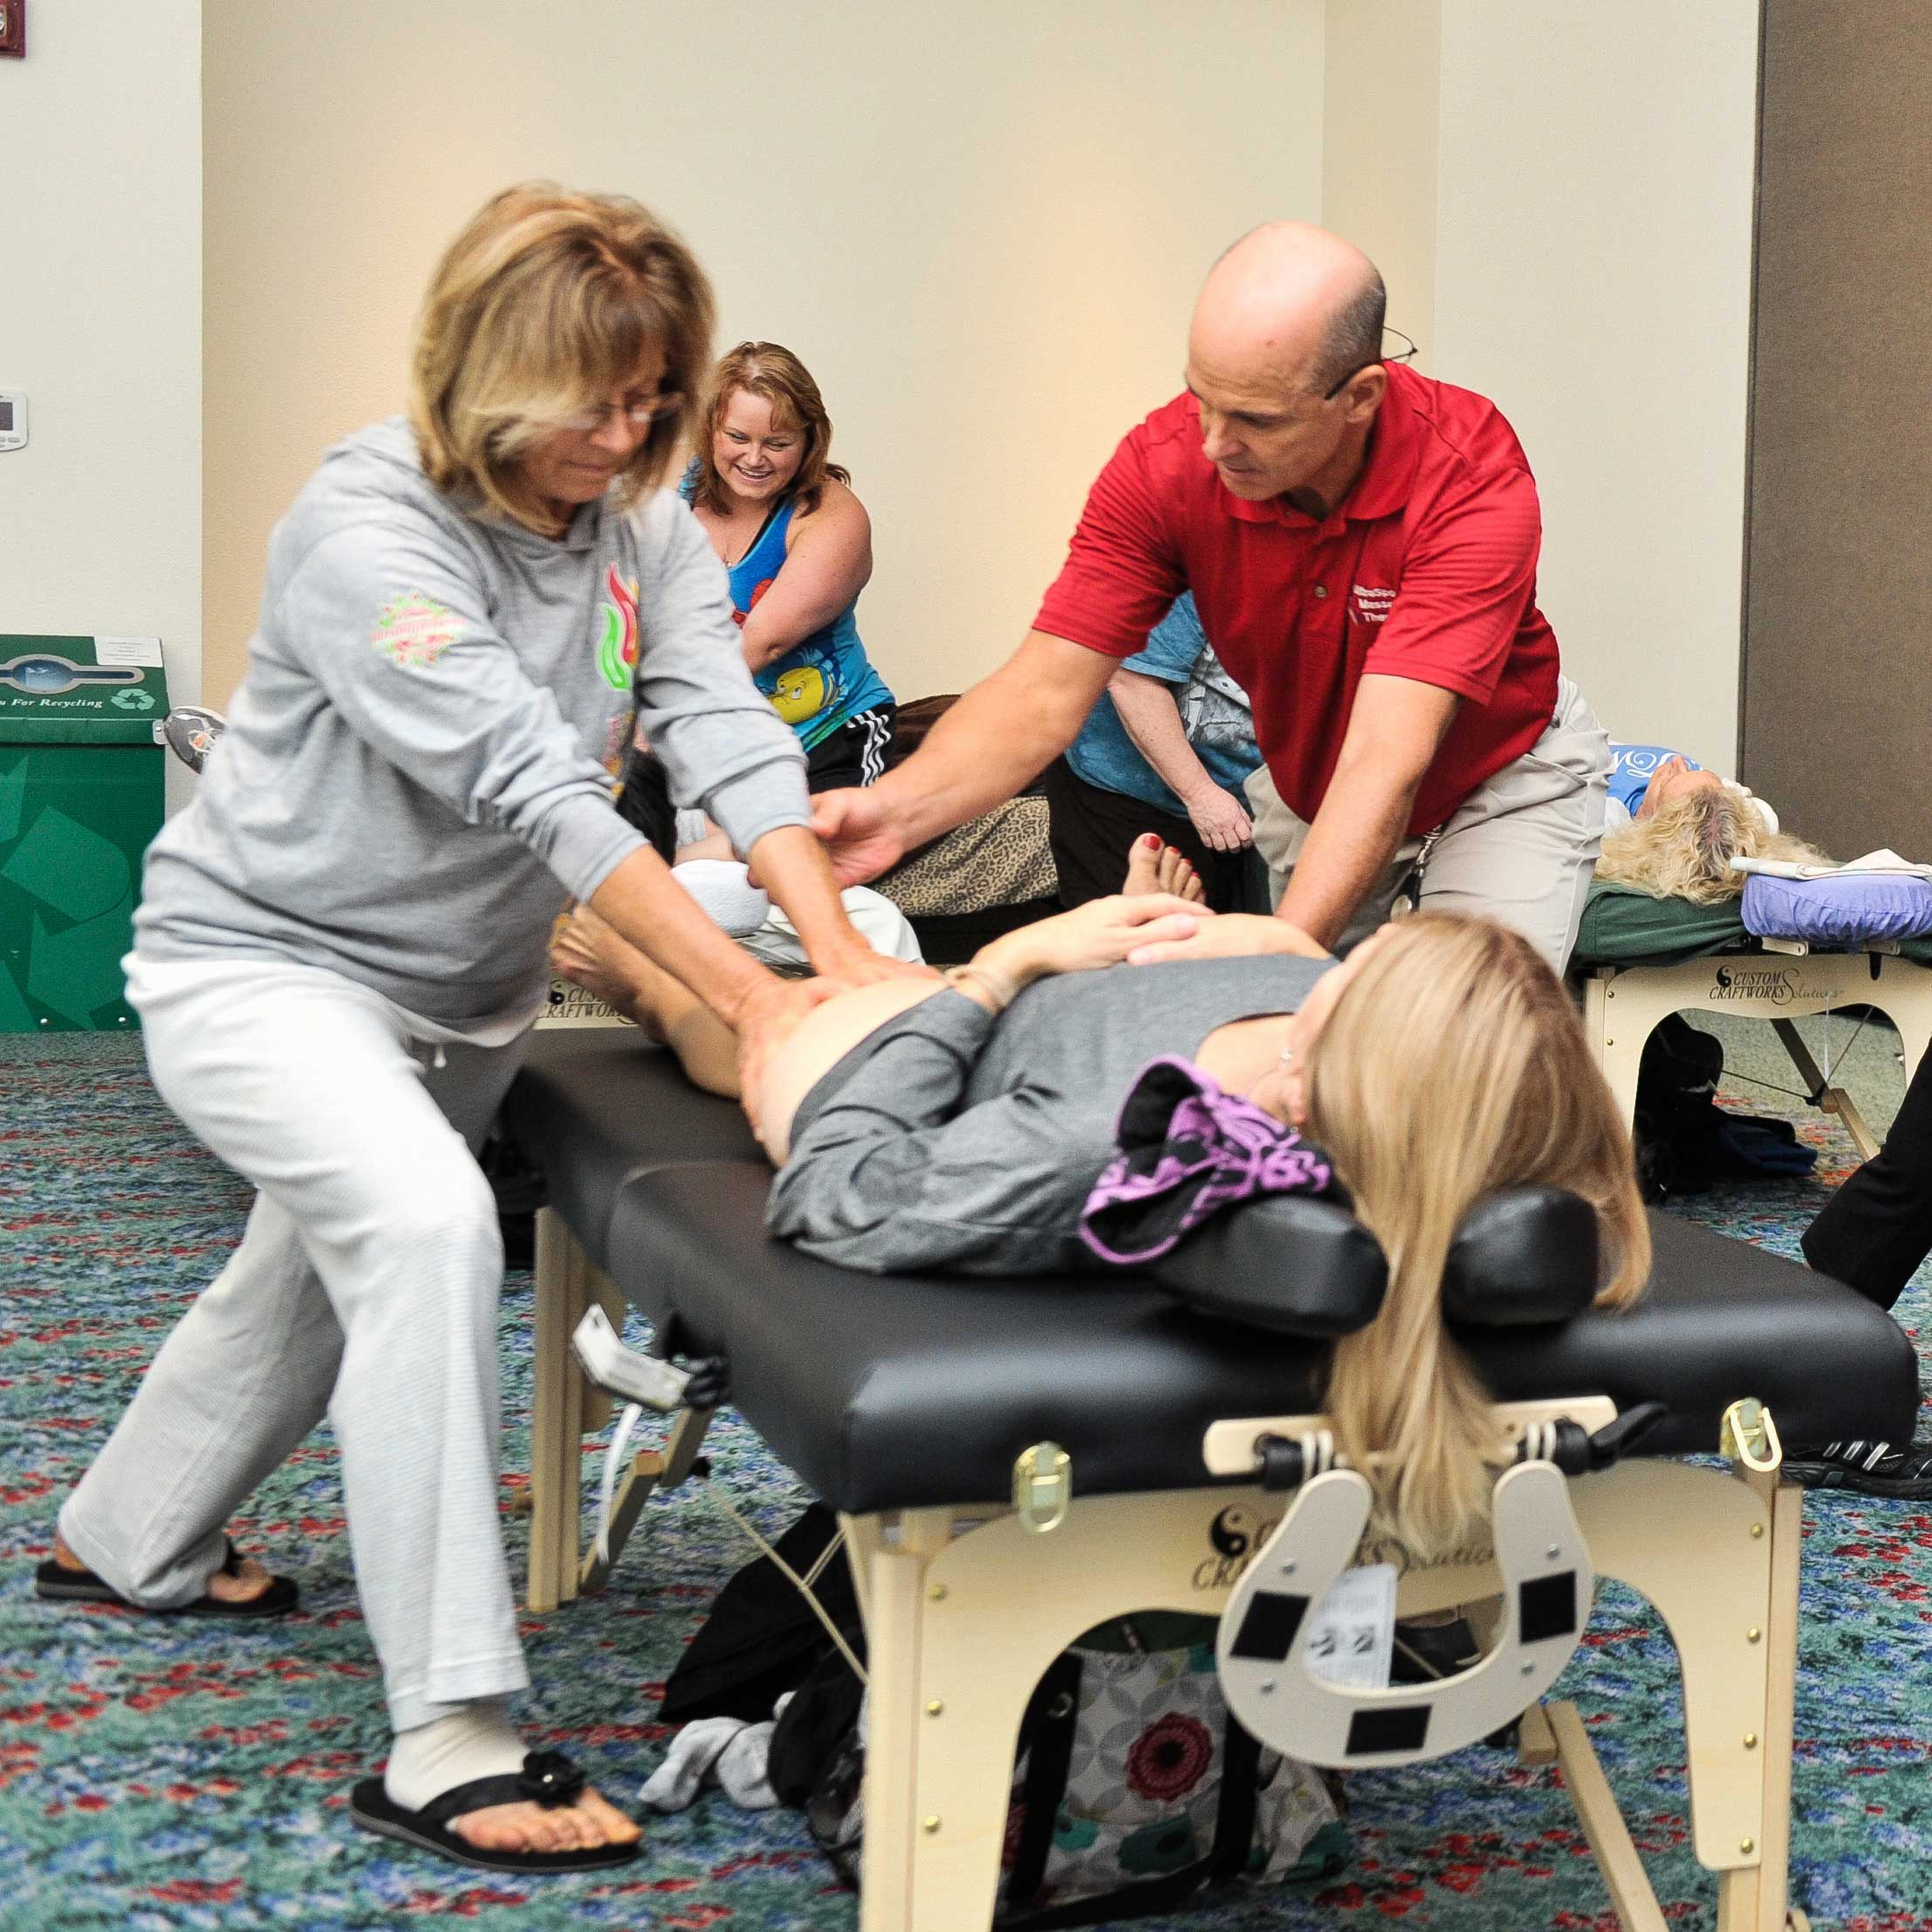 Massage teacher showing student a massage technique